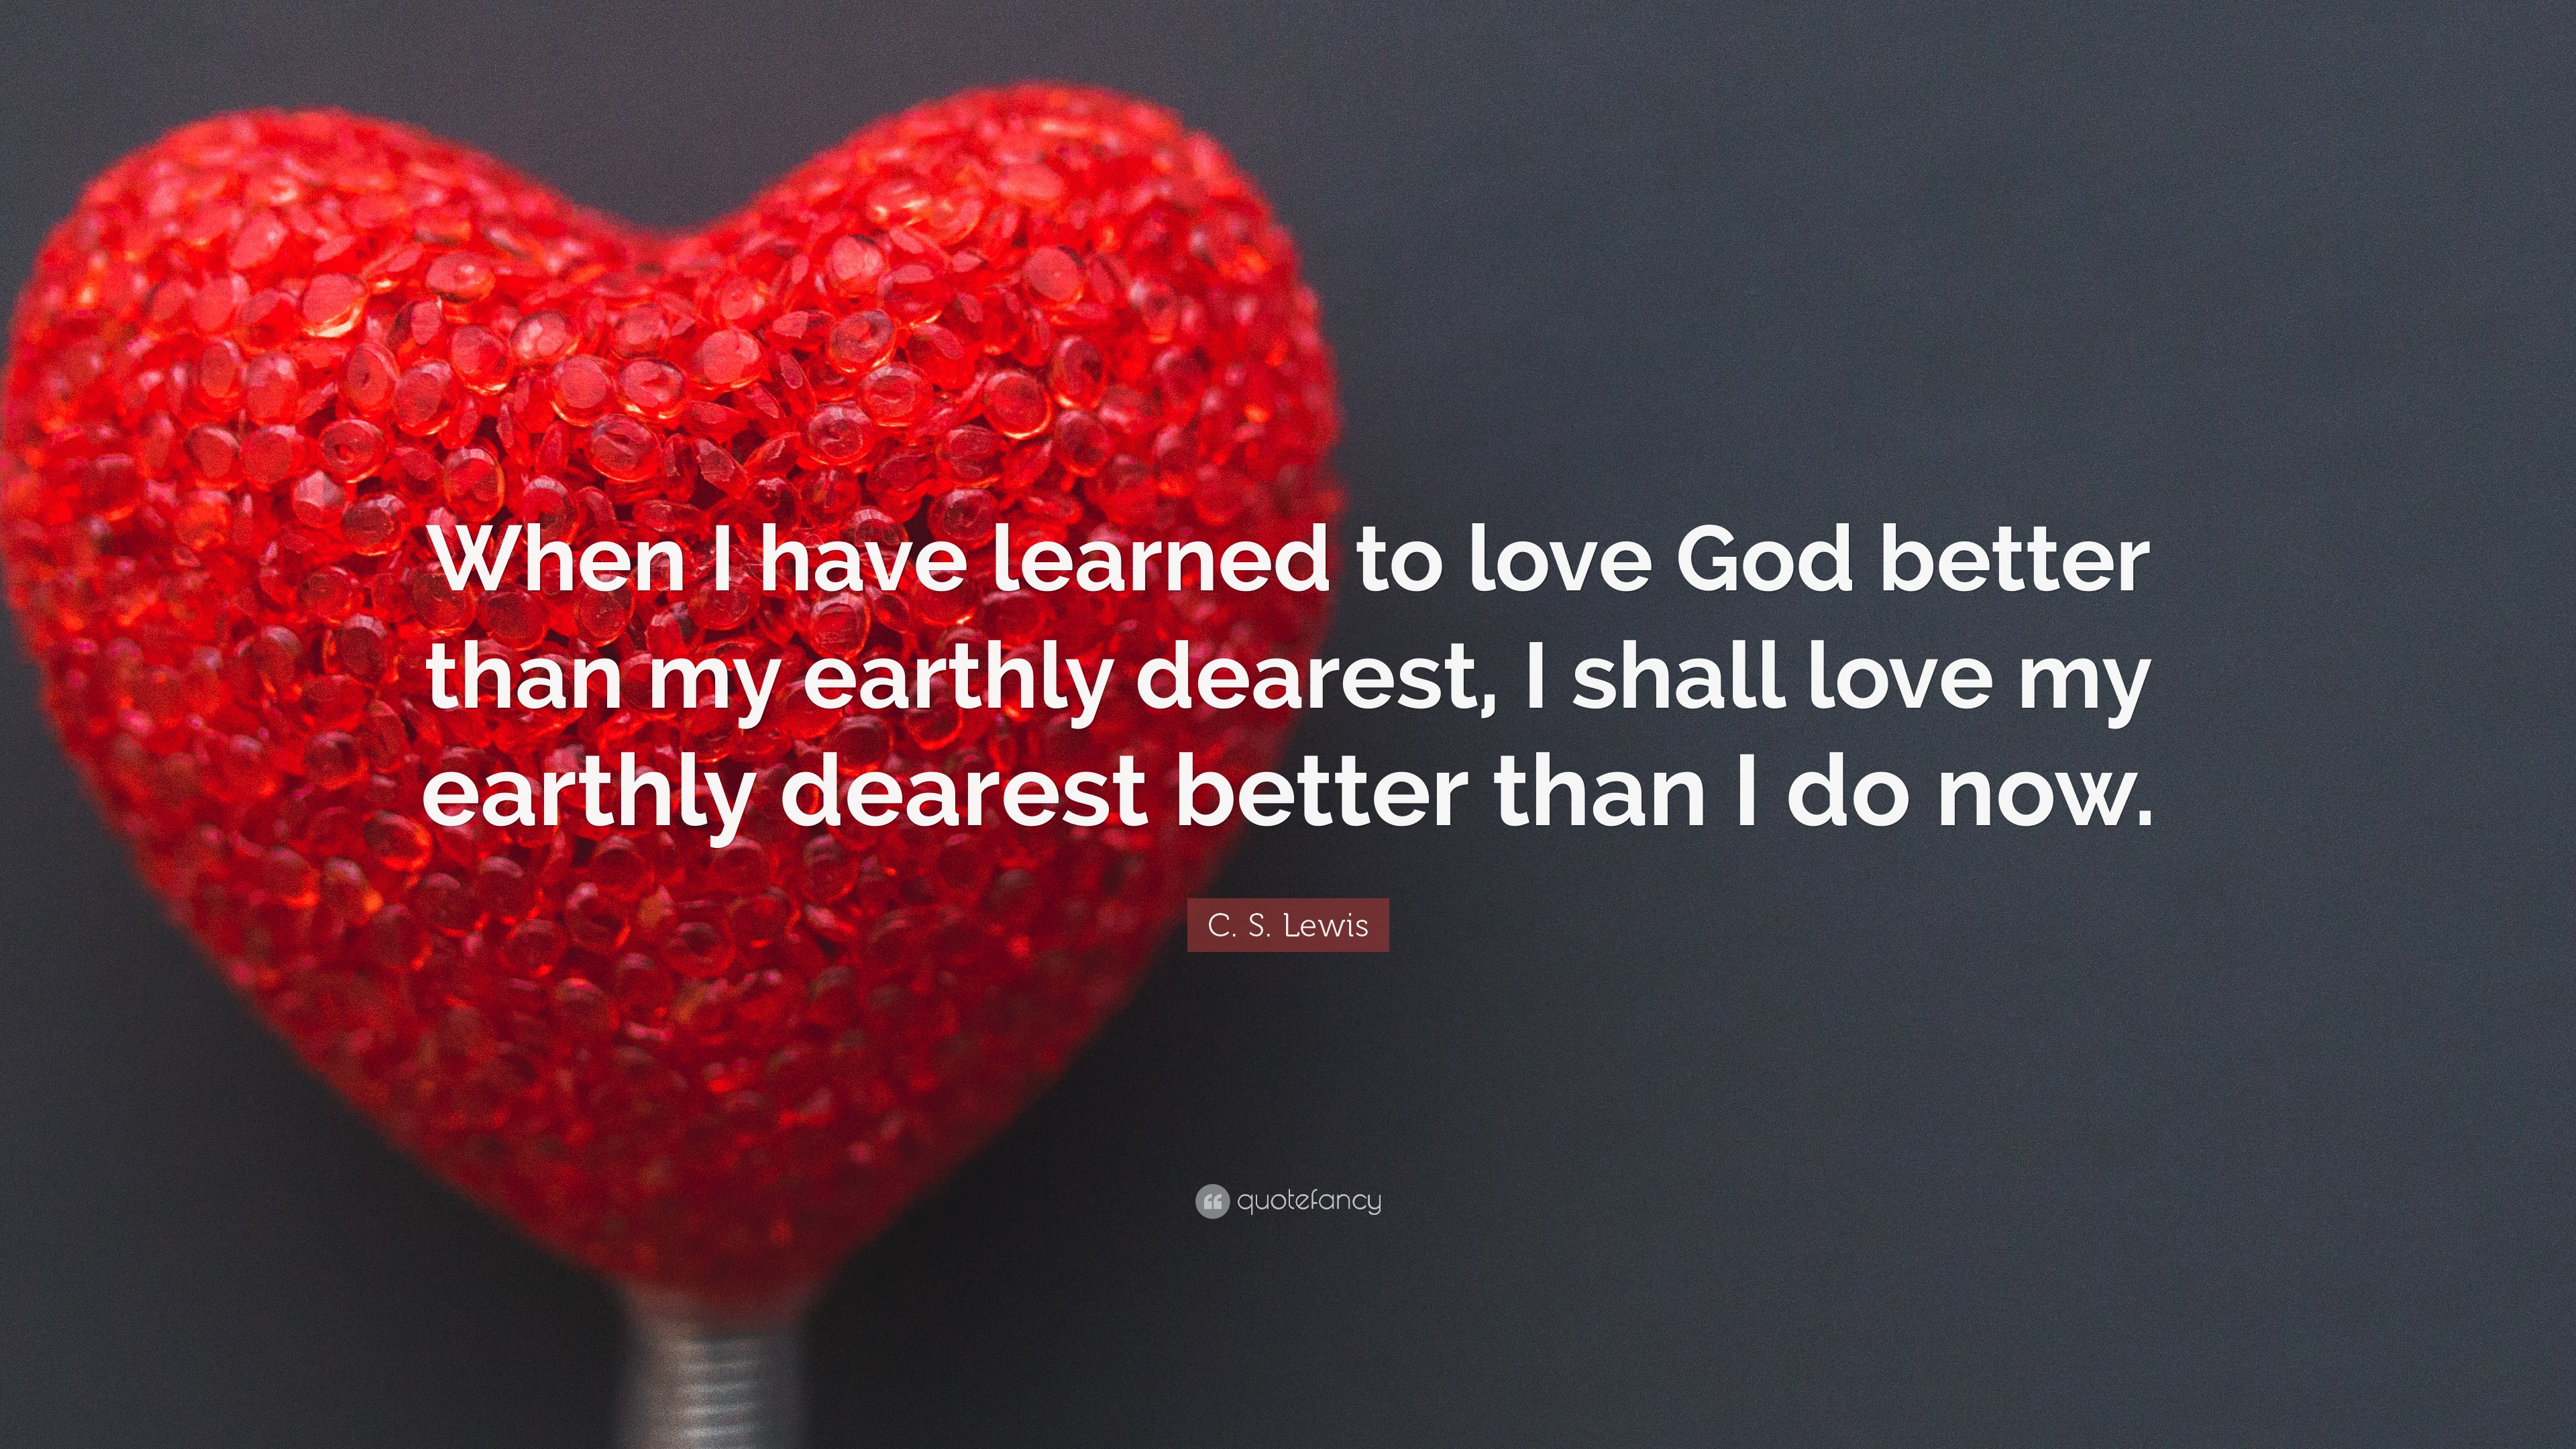 Beautiful Wallpaper Love God - 39670-C-S-Lewis-Quote-When-I-have-learned-to-love-God-better-than-my  Collection_566476.jpg